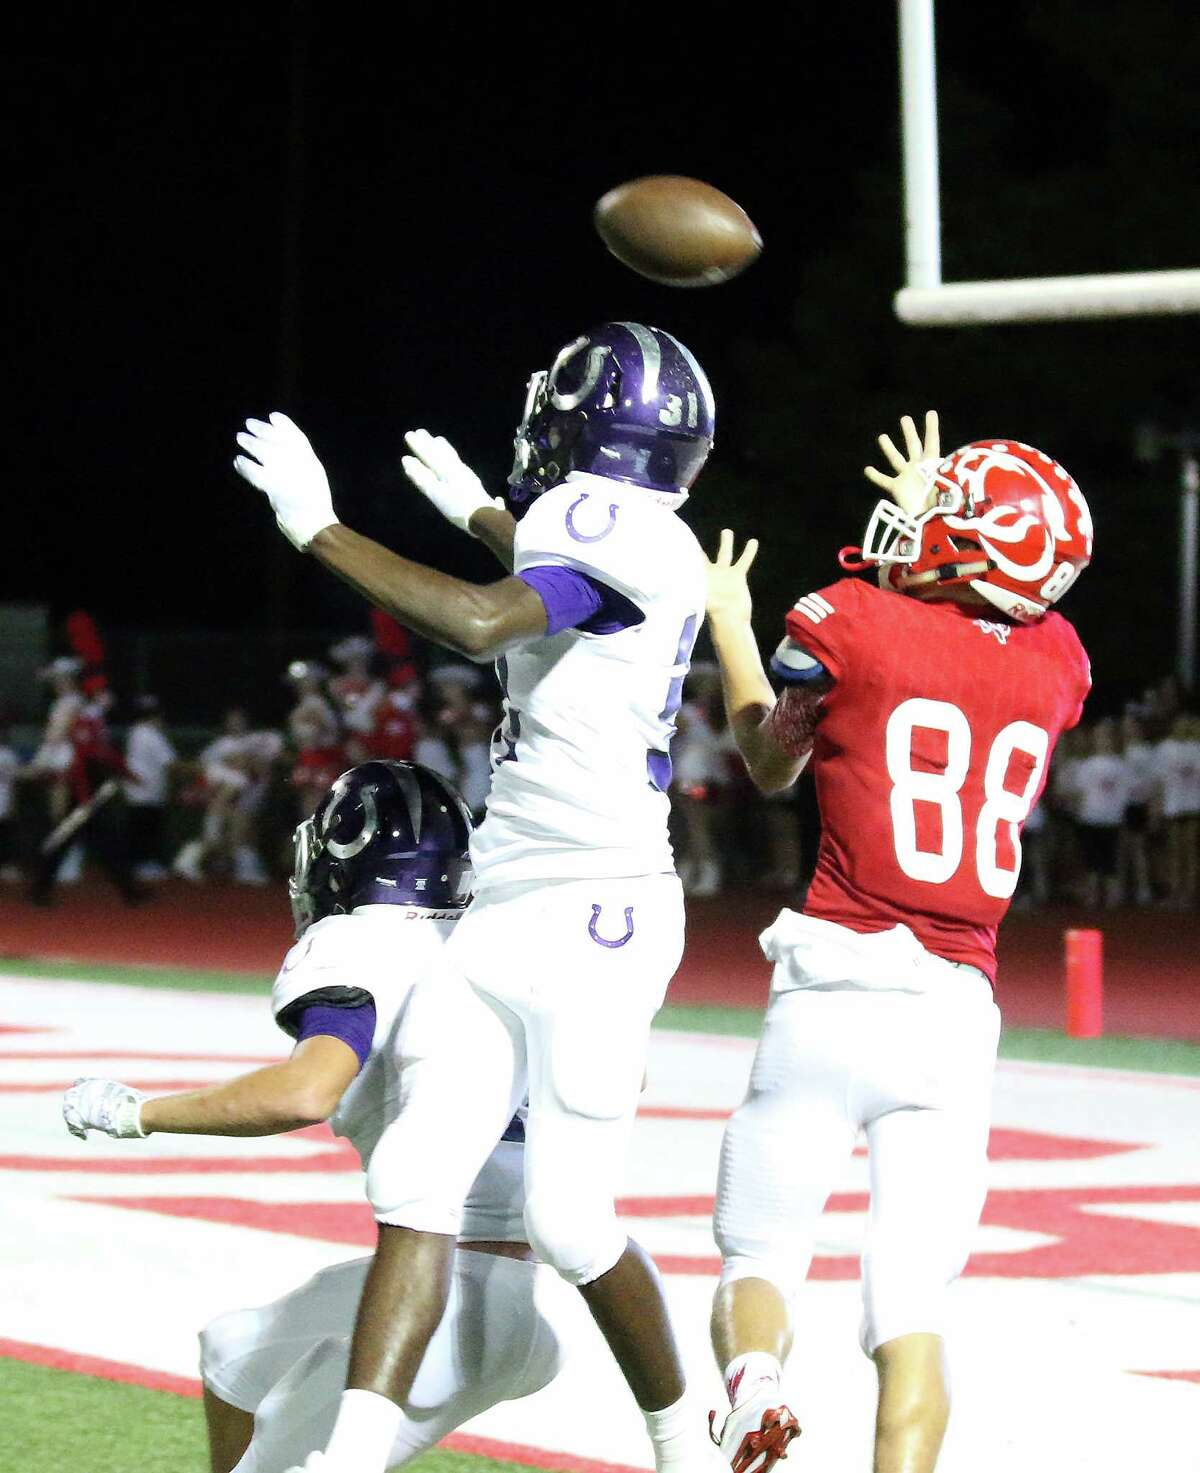 Crosby quarterback Mannie Netherly floats the pass over two Dayton defenders into the hands of Ronny Woodard for a Crosby TD. The Coogs had to come from behind to defeat the Broncos, 41-34 in OT.